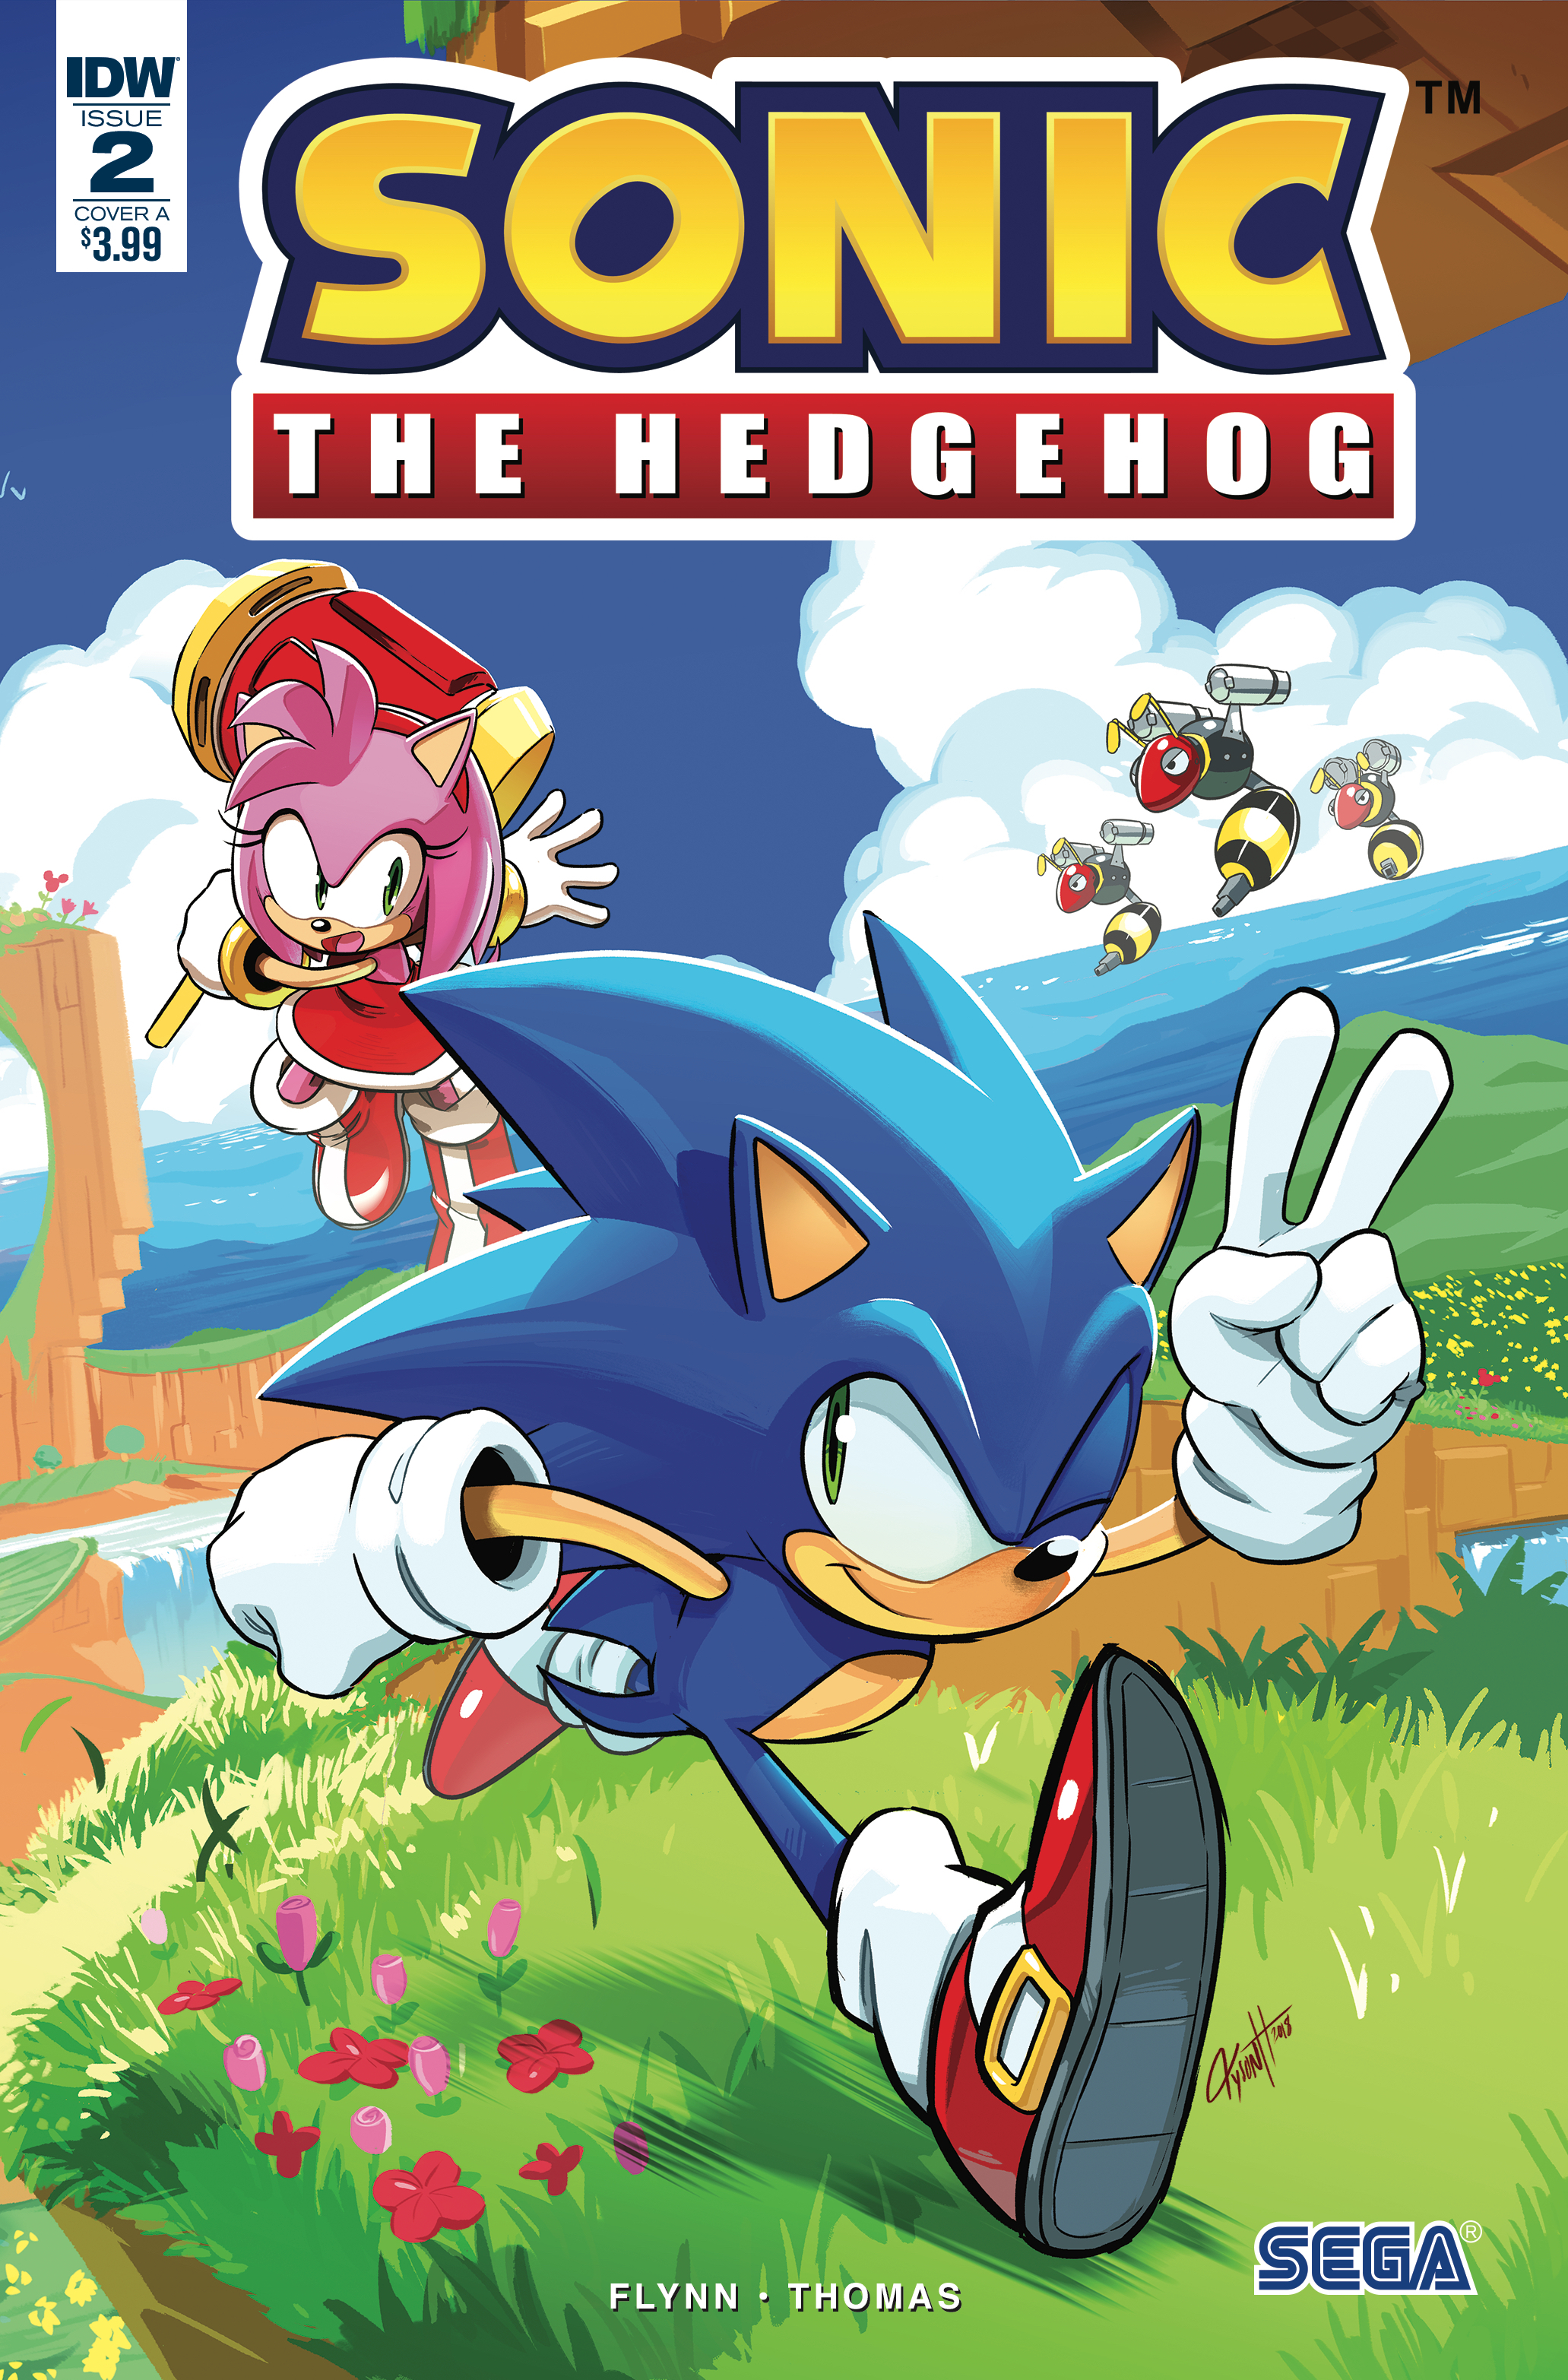 SONIC THE HEDGEHOG #2 CVR A HESSE